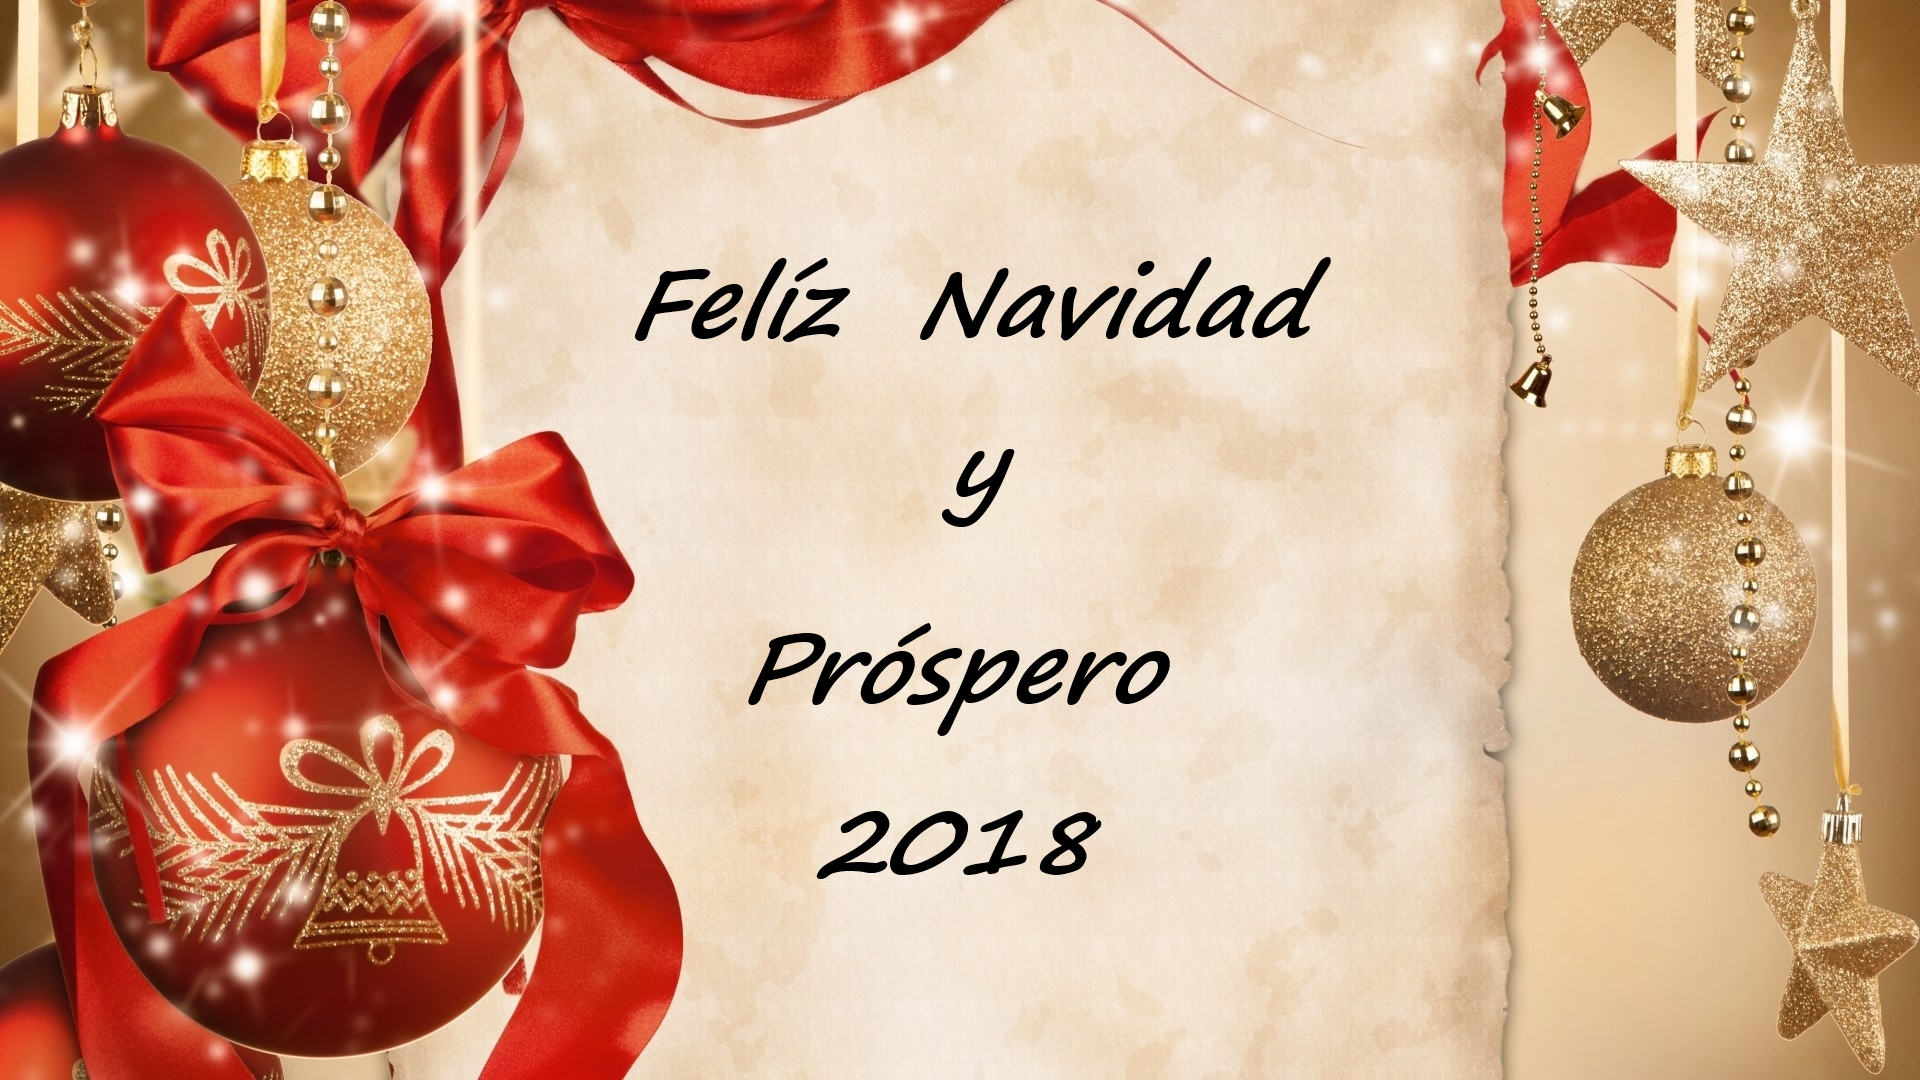 new year 2018 wallpapers id887411